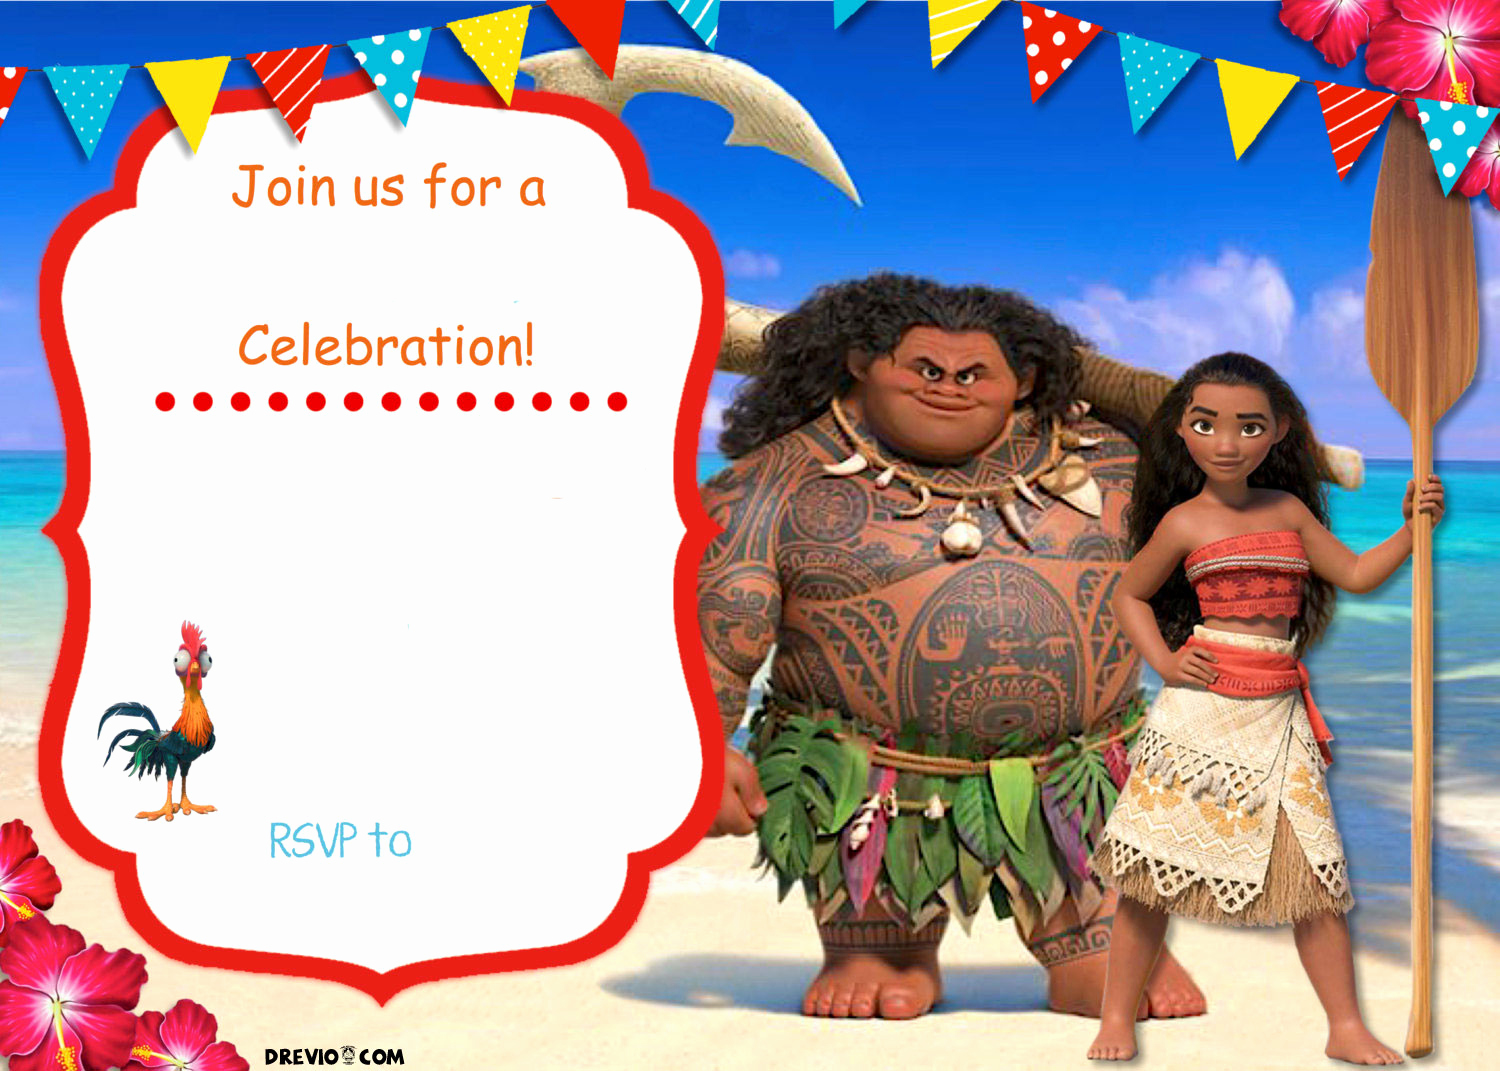 Free Moana Invitation Template Awesome Free Moana Birthday Invitation Template Free Invitation